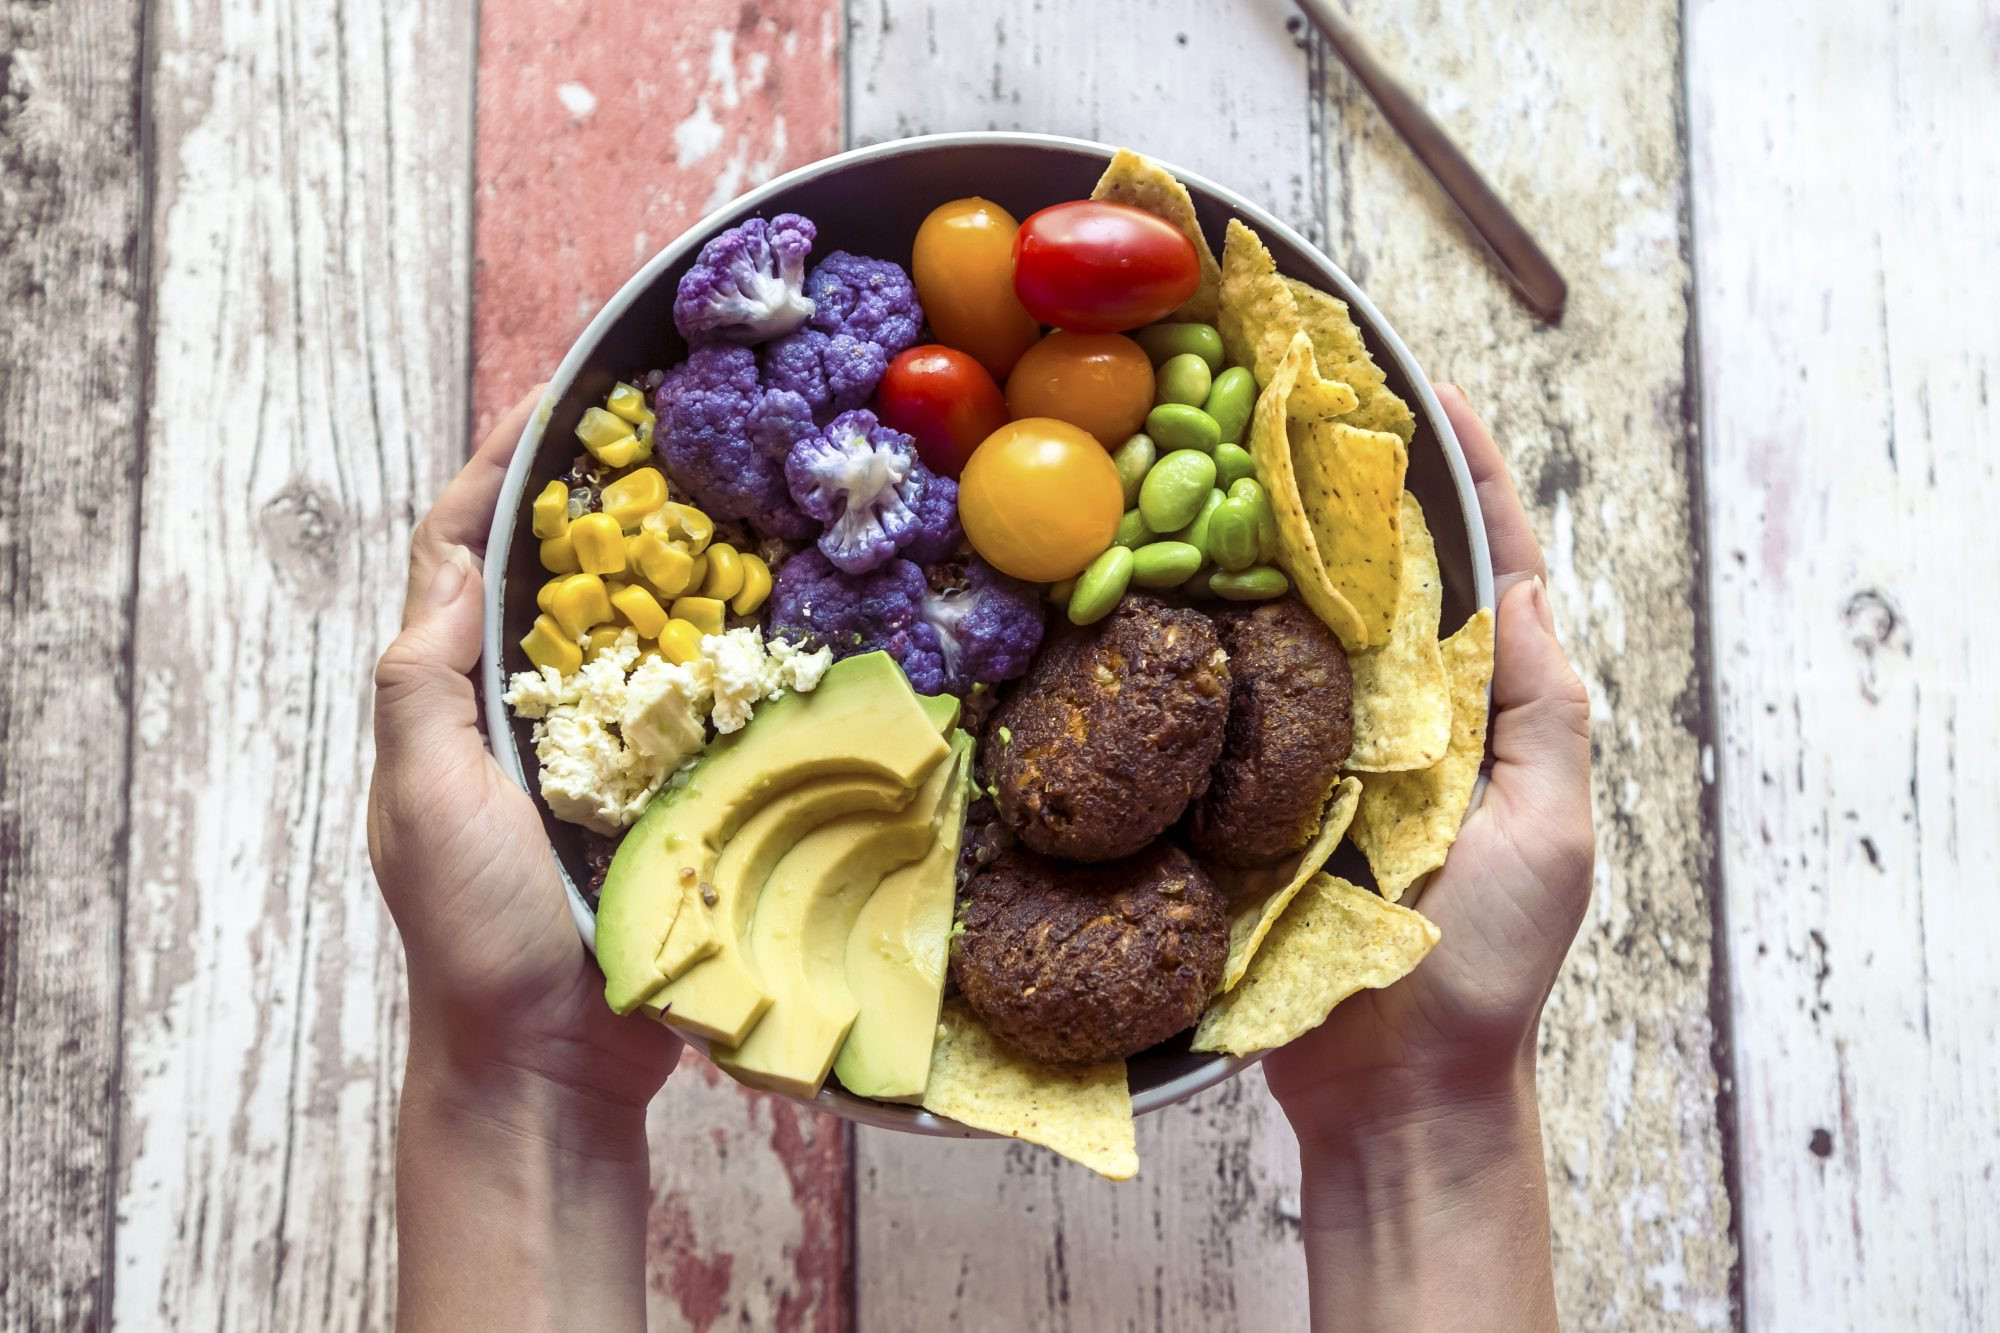 The Planetary Diet Cuts Back on Red Meat—and the Benefits Go Far Beyond Weight Loss